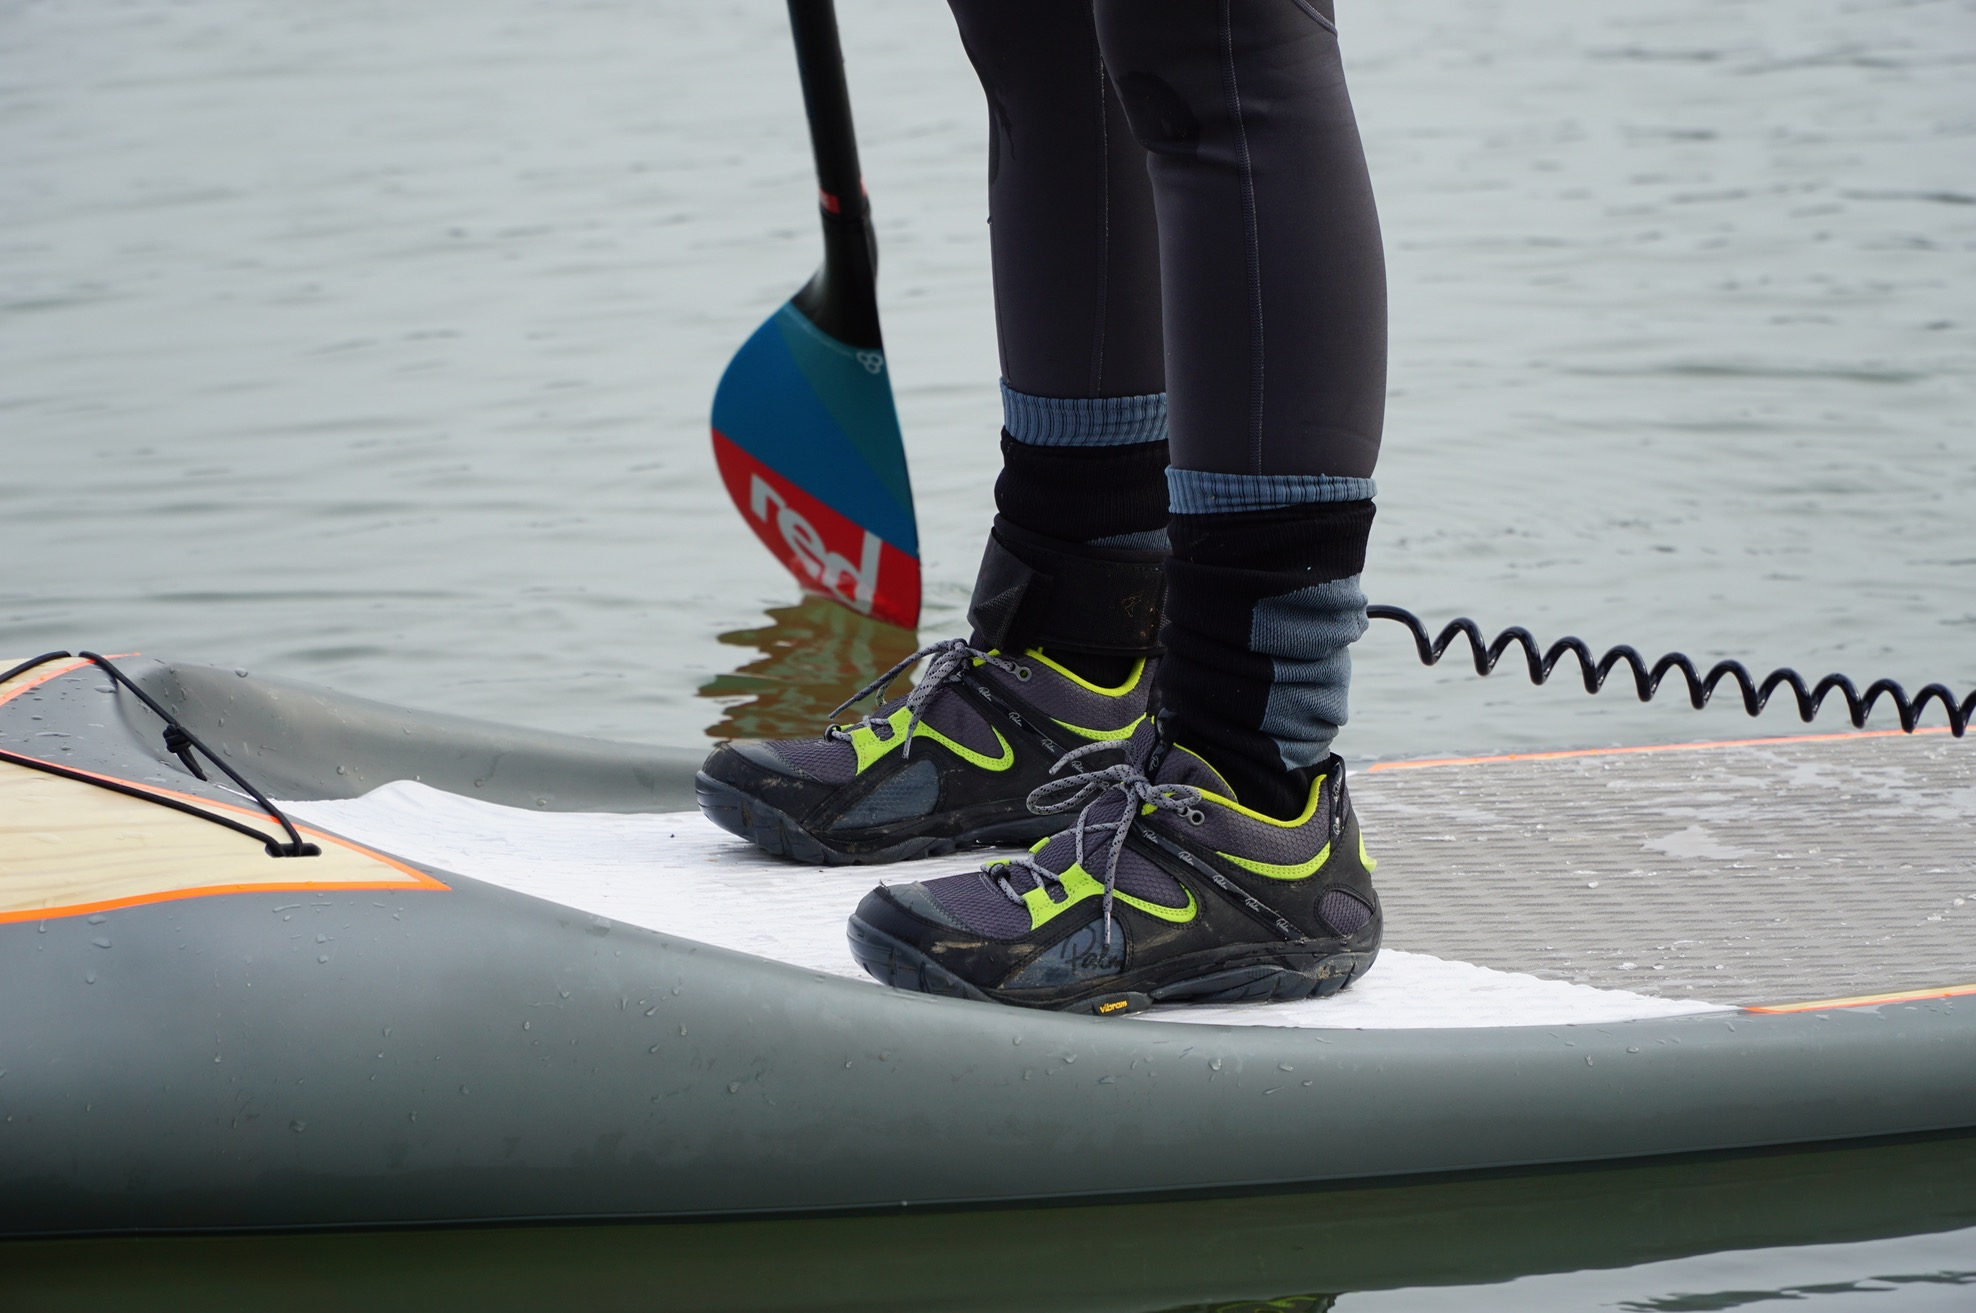 What to wear on your feet paddleboarding? - trainers